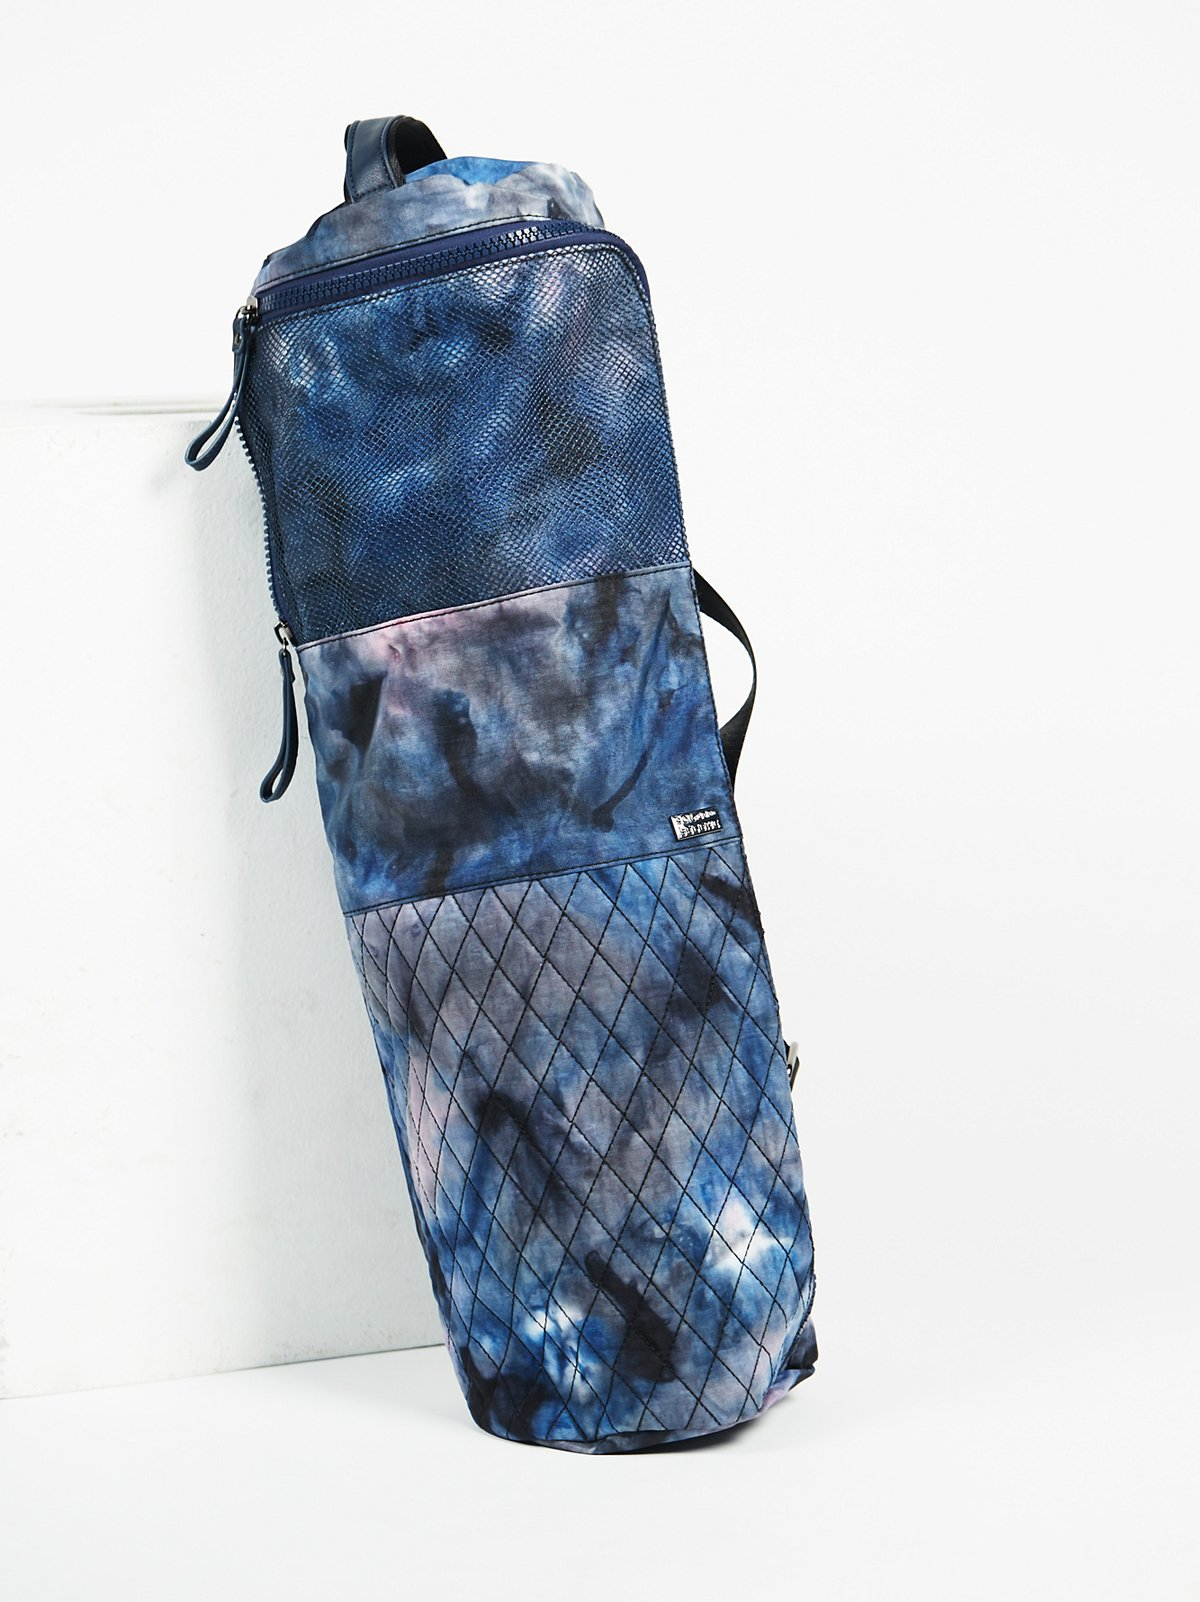 Karma Yoga Bag